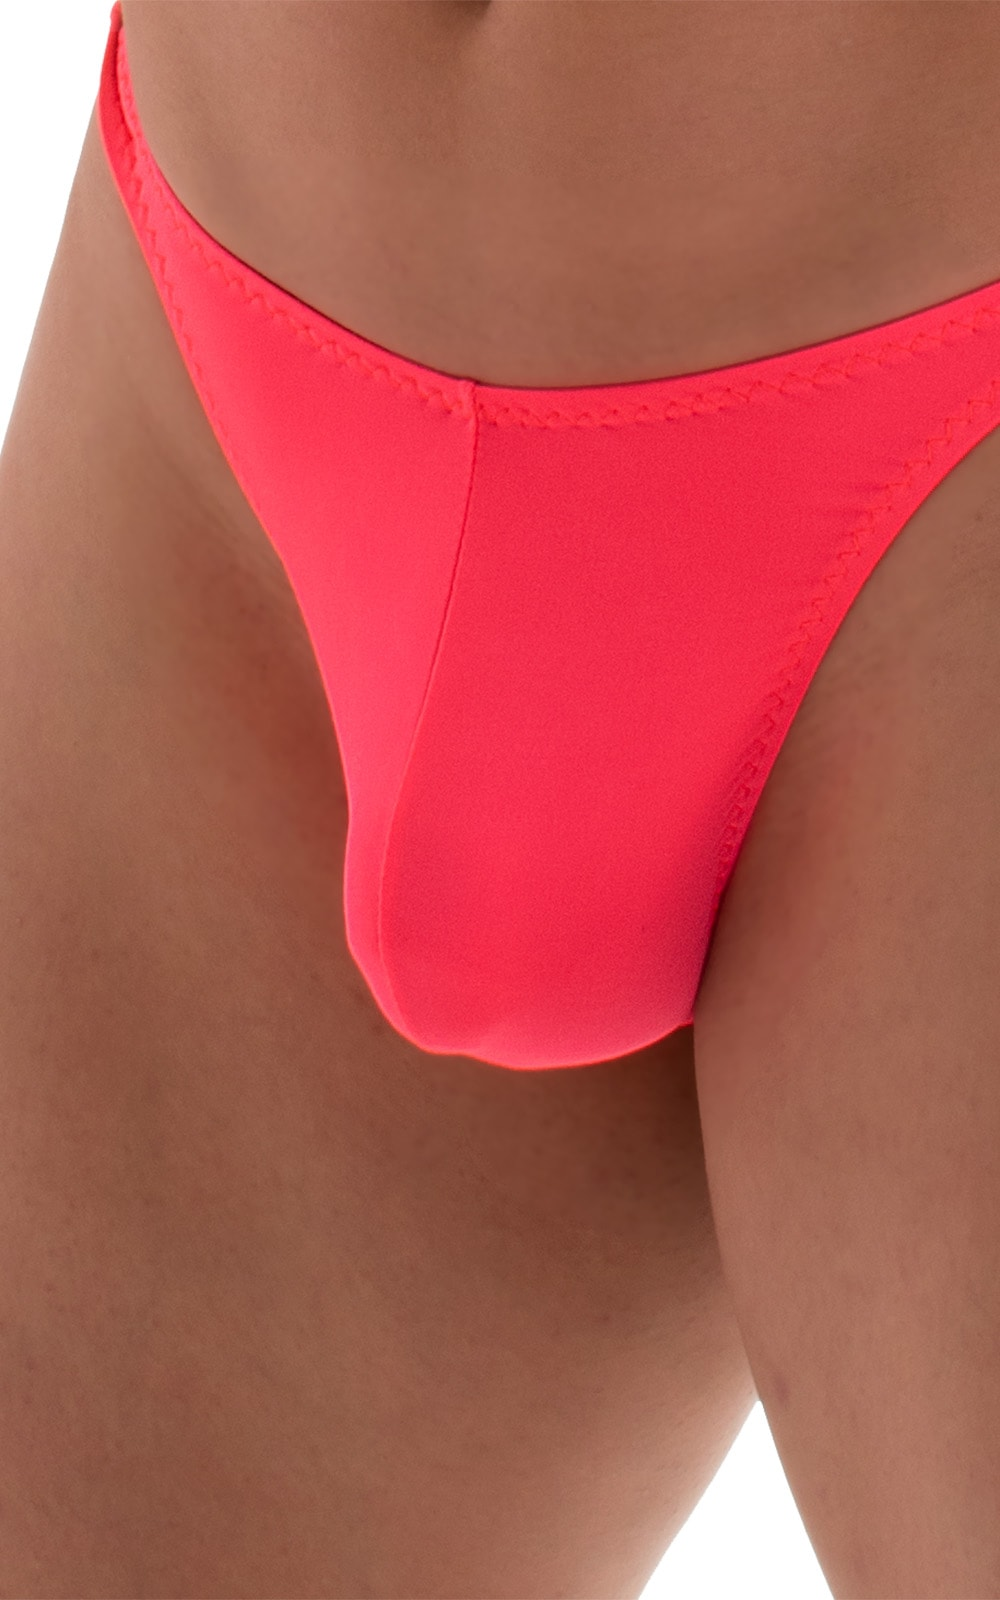 T Back Thong Swimsuit in ThinSkinz Neon Coral 4